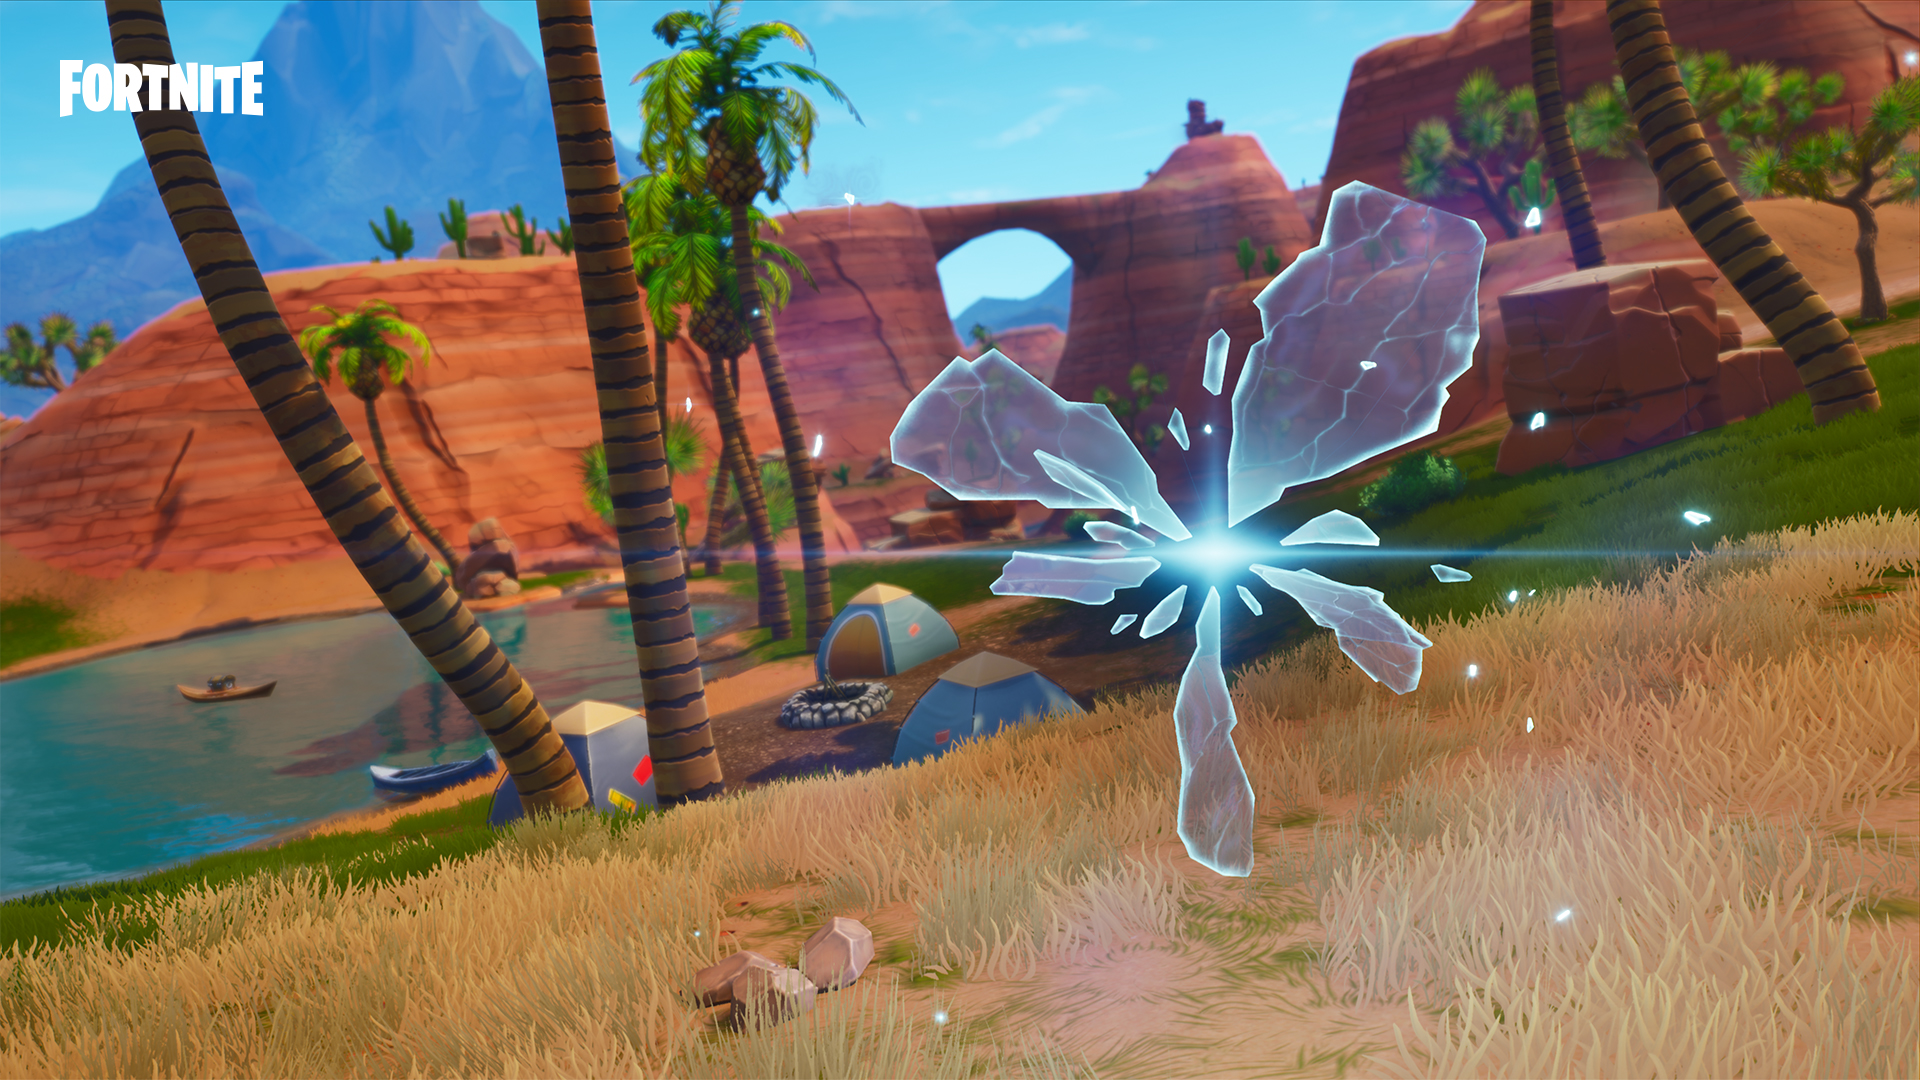 Fortnite Season 5 Introduces Temporal Rifts Golf Carts And New